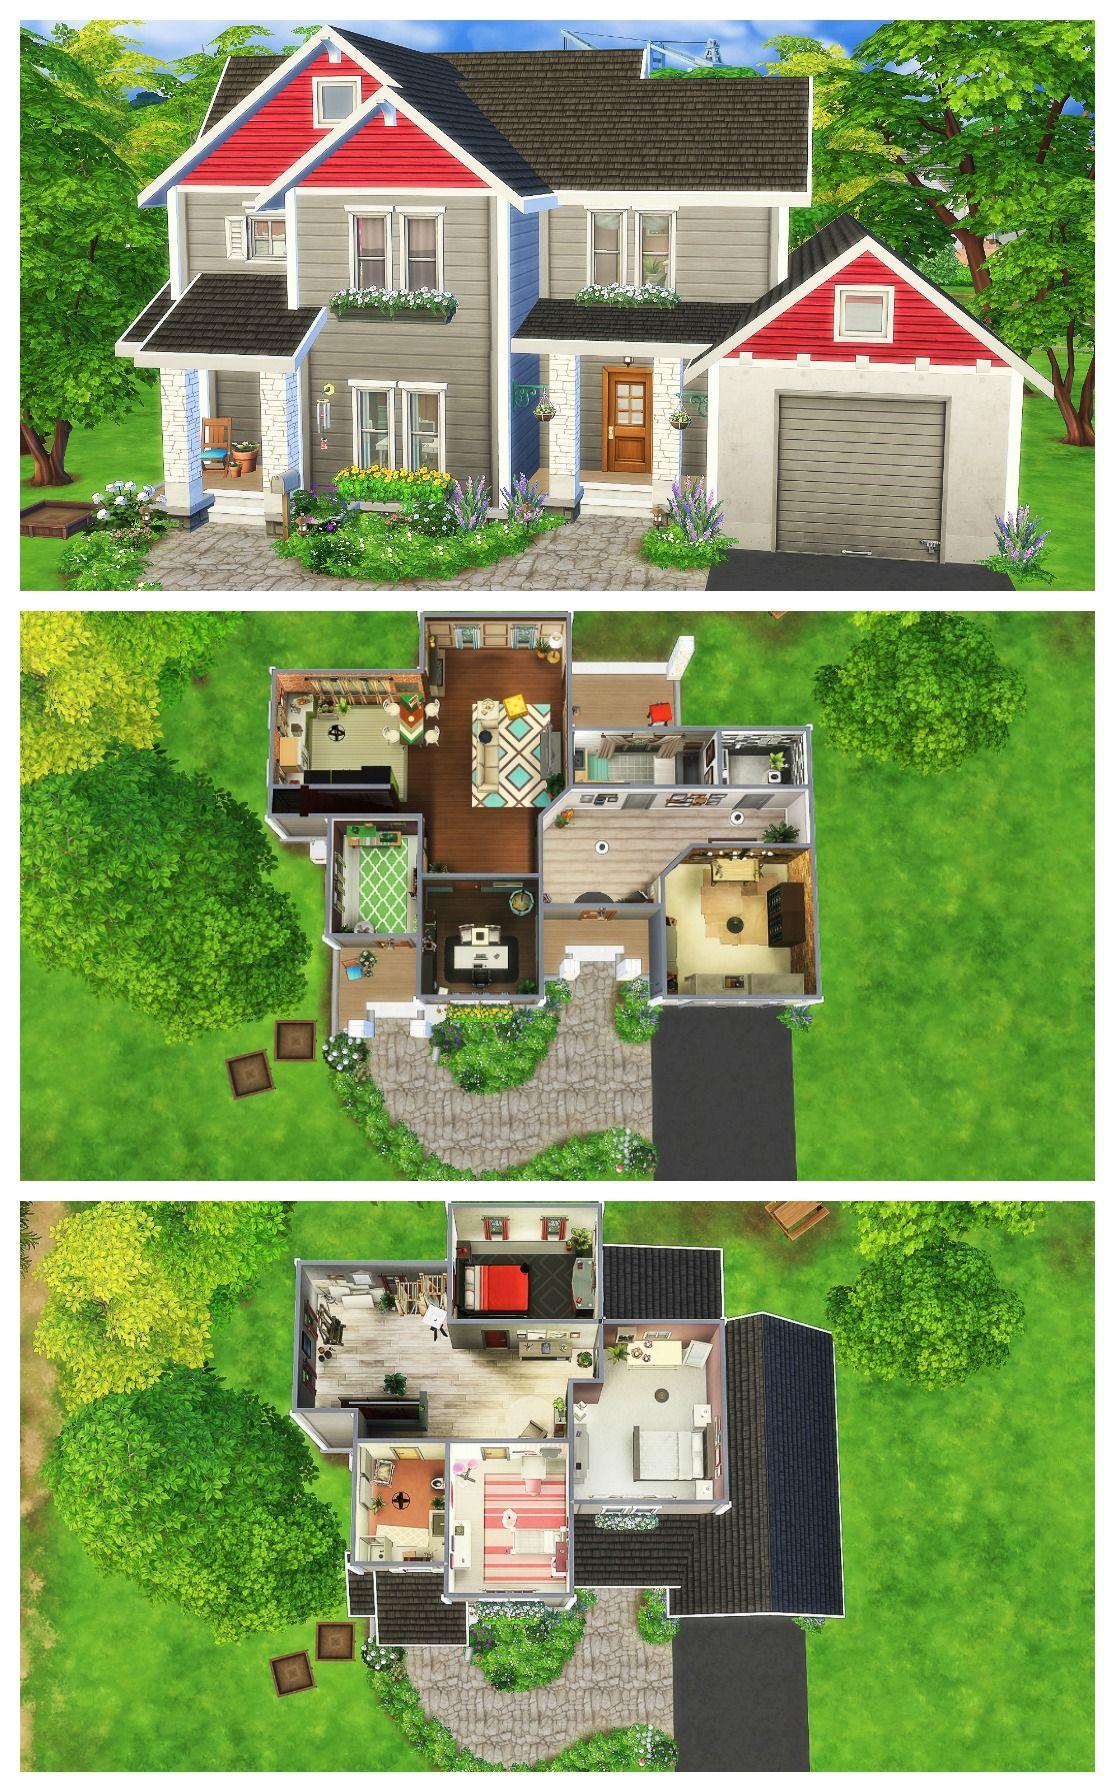 Craftsman House Sims 4 Speed Build Maison Sims Sims 4 Maison Idee Plan Maison